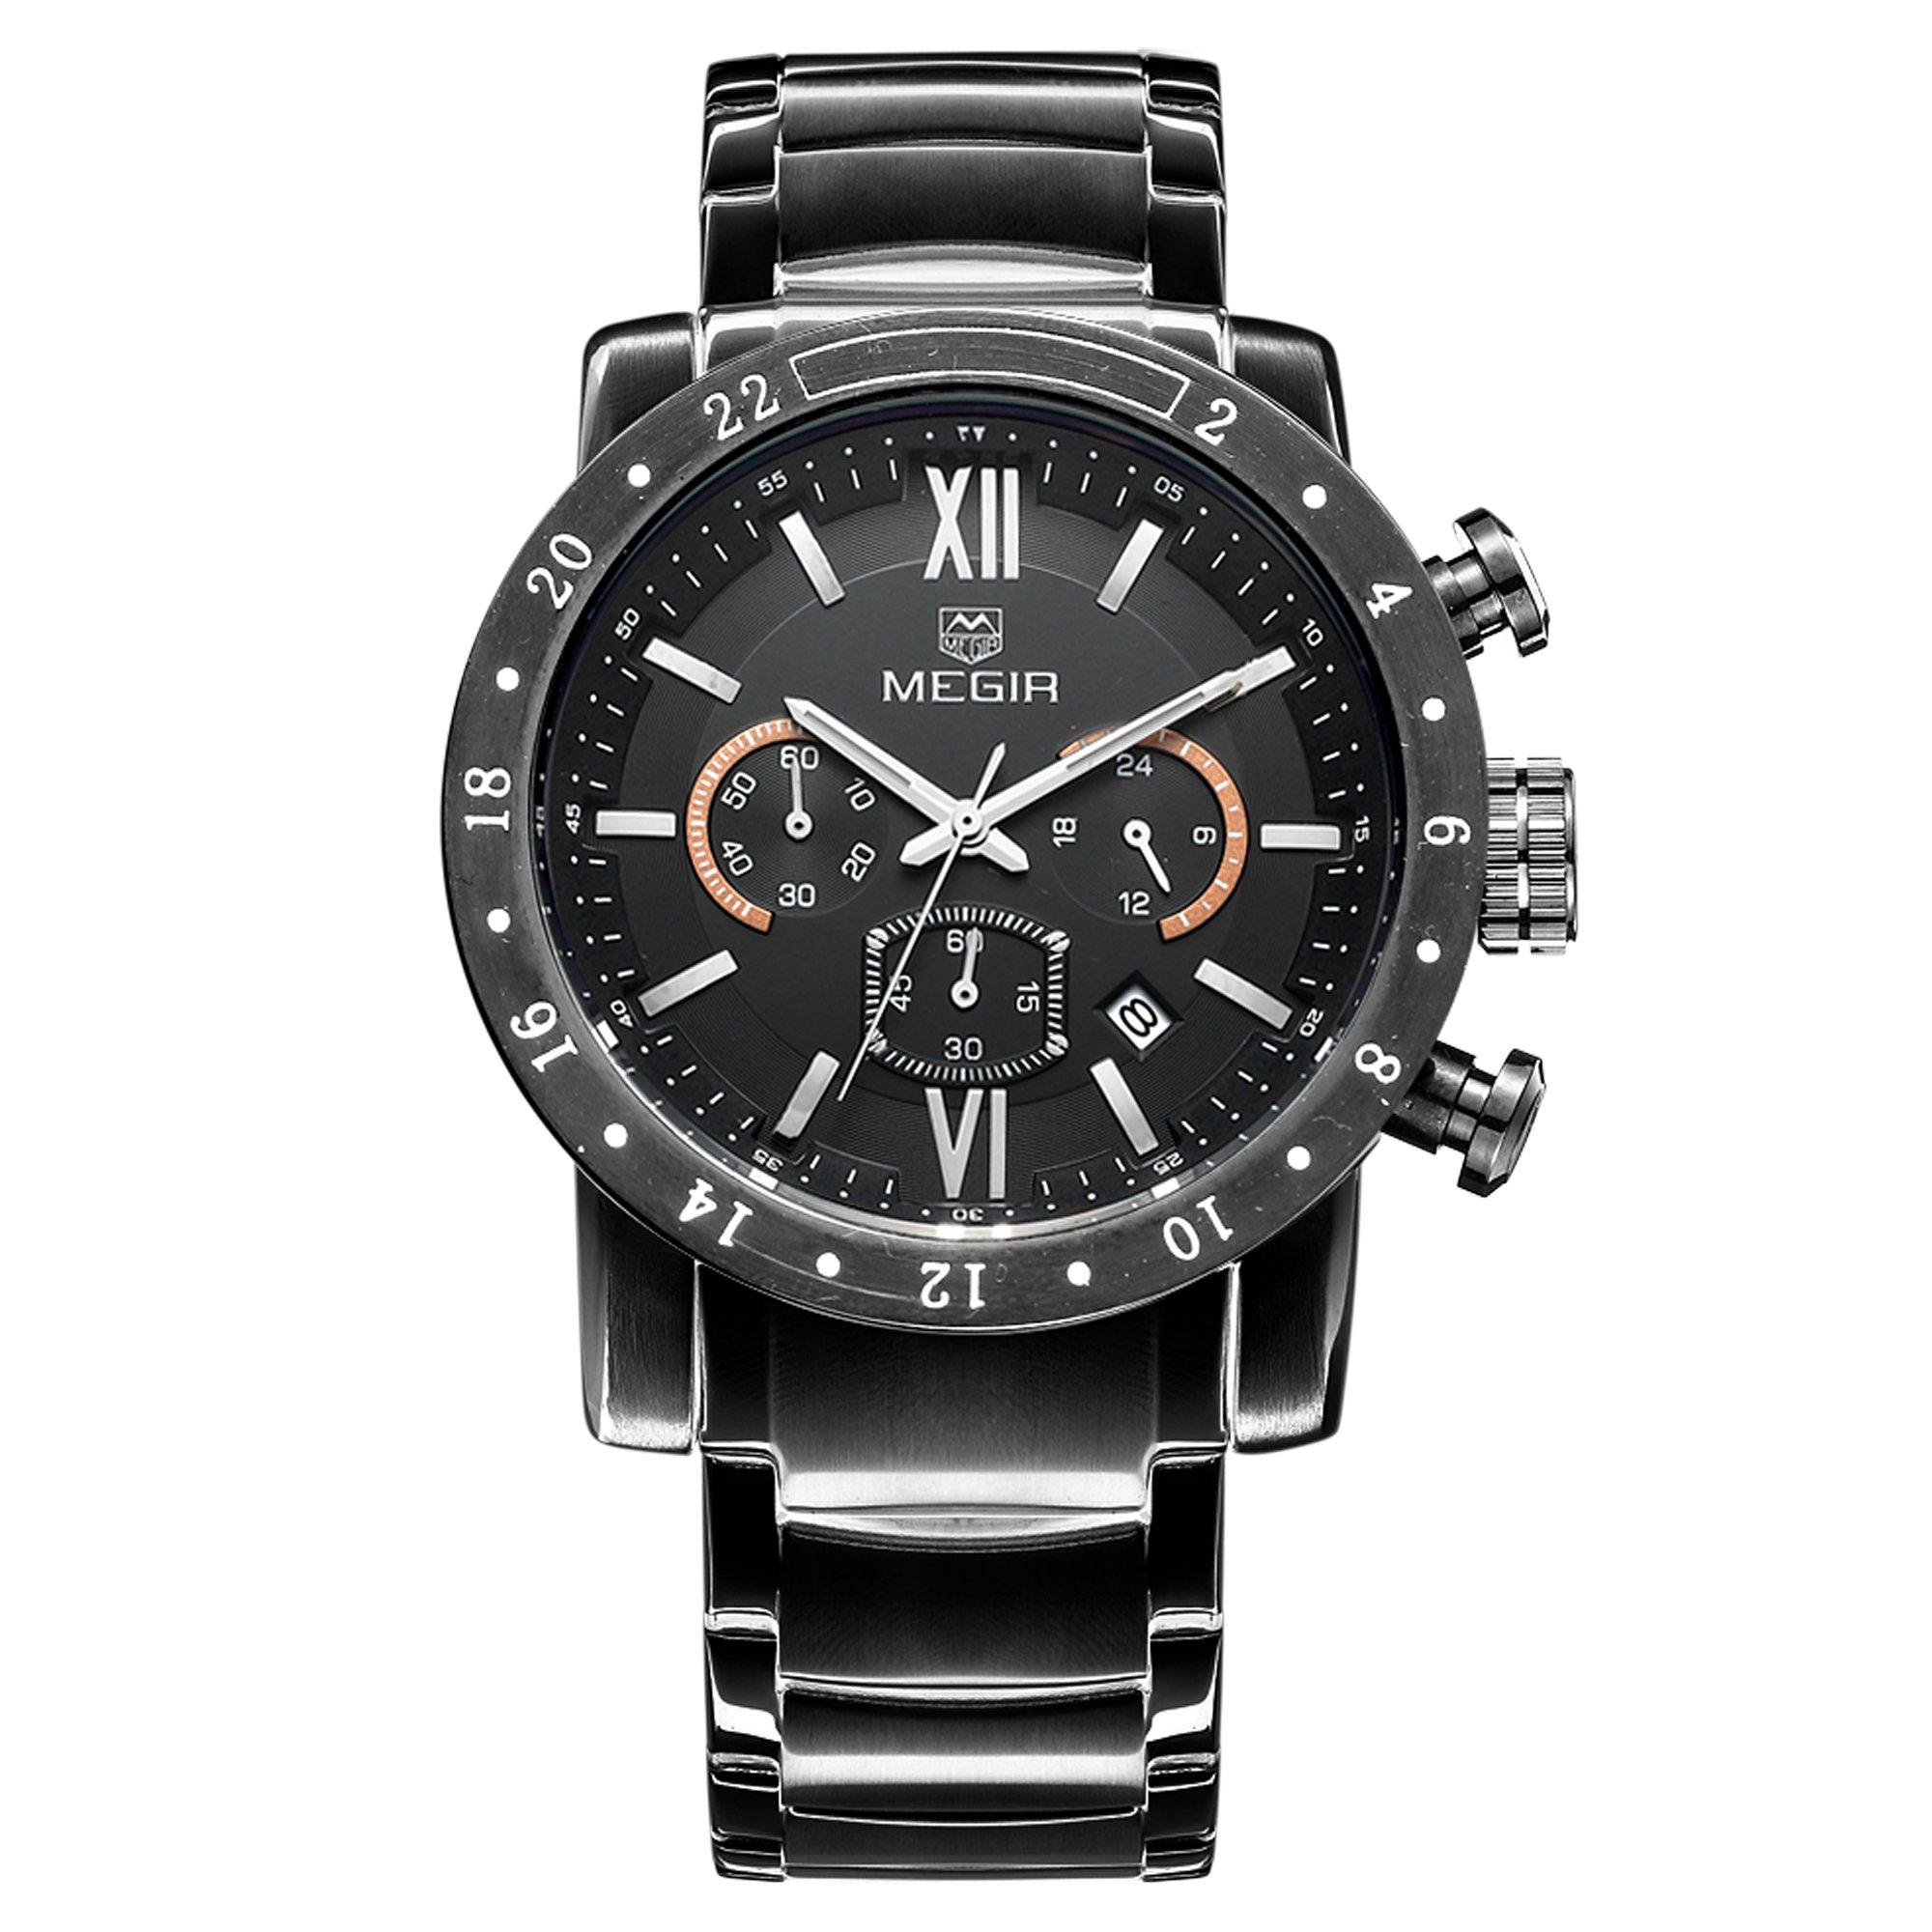 MEGIR Fashion Megir watch, quartz watch for men waterproof luminous wrist watch 3008 - MEGIR